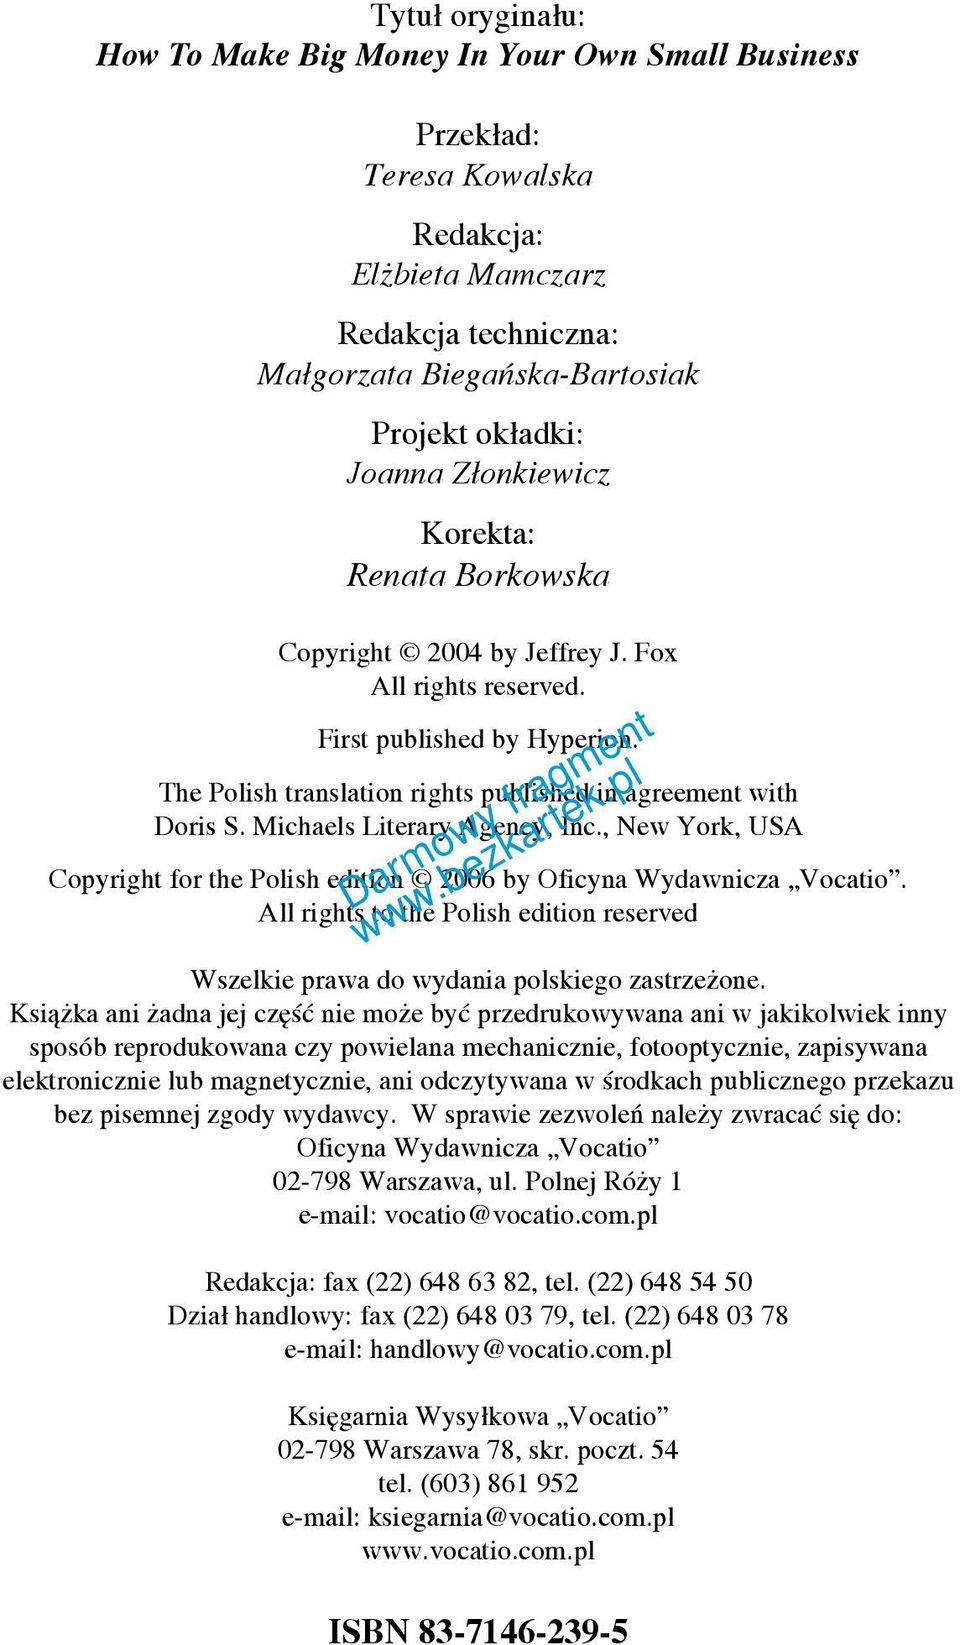 Michaels Literary Agency, Inc., New York, USA Copyright for the Polish edition 2006 by Oficyna Wydawnicza Vocatio.